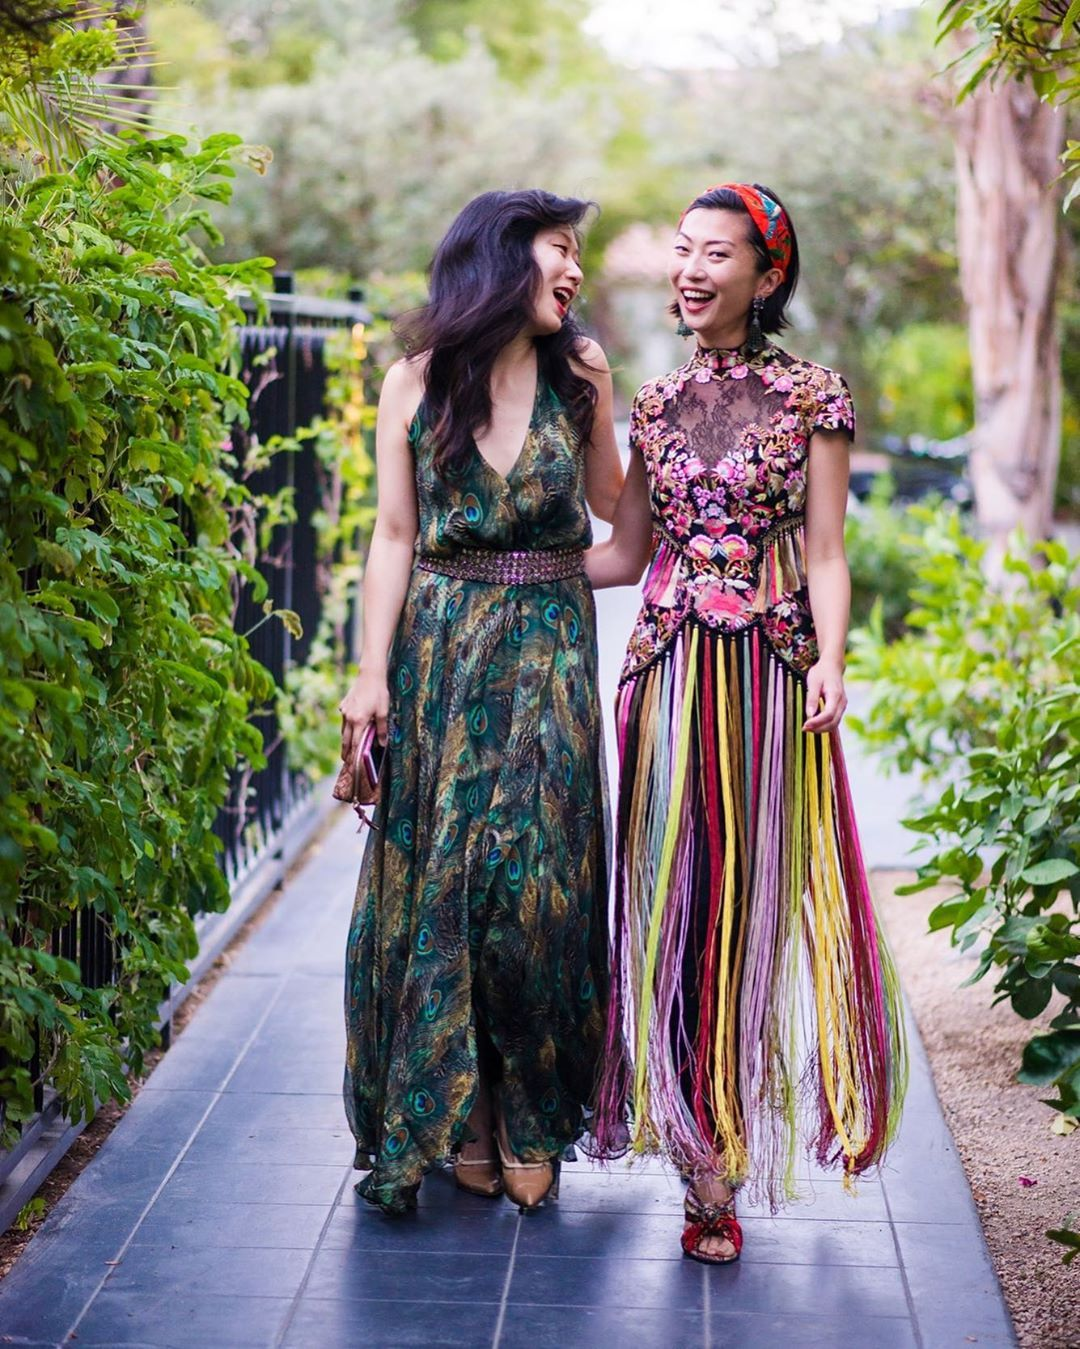 10 Best Tatlergrams: Laura Cheung's Bridesmaid Excitement and More